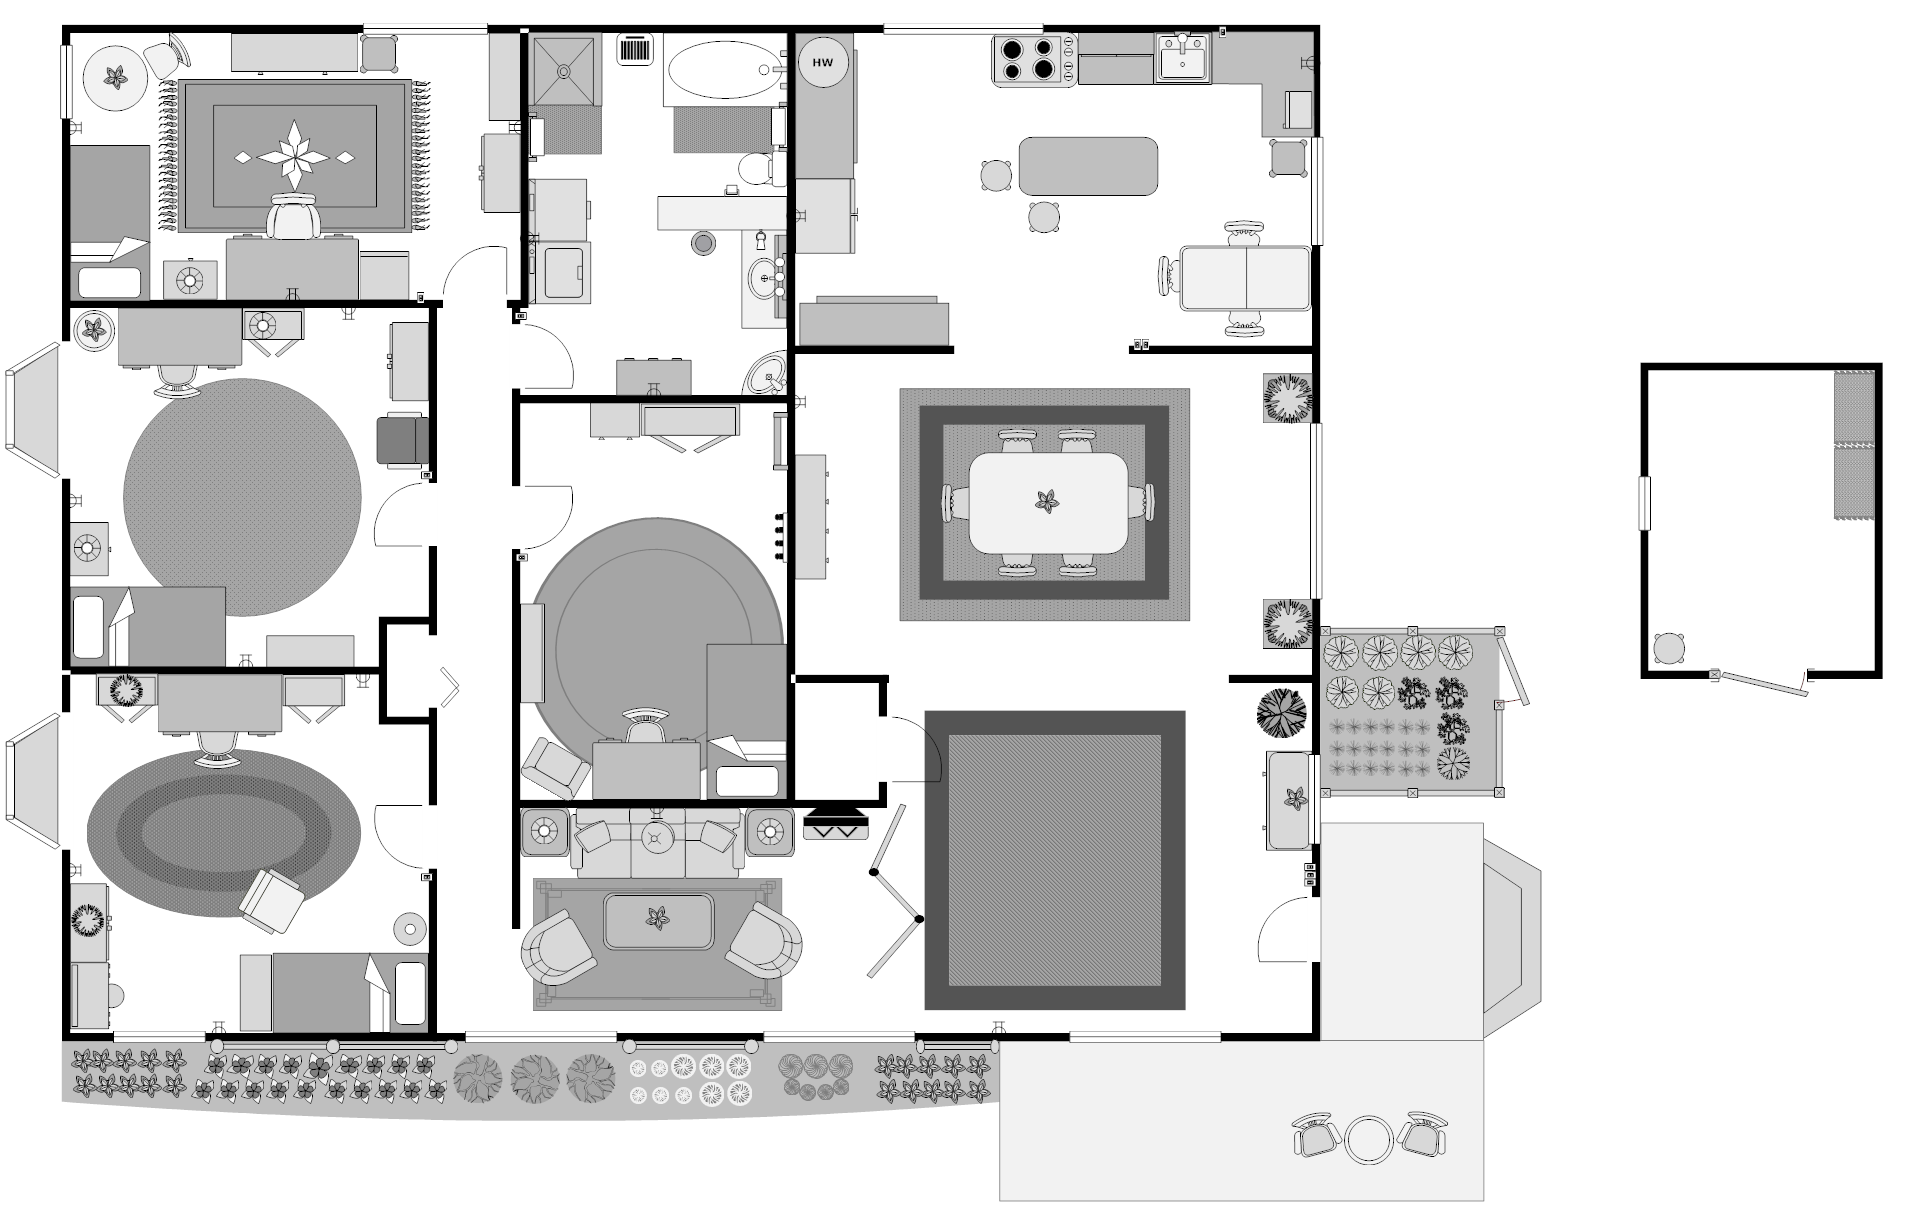 House 42 Floor Plan Post Electricity Chikaidestroyer